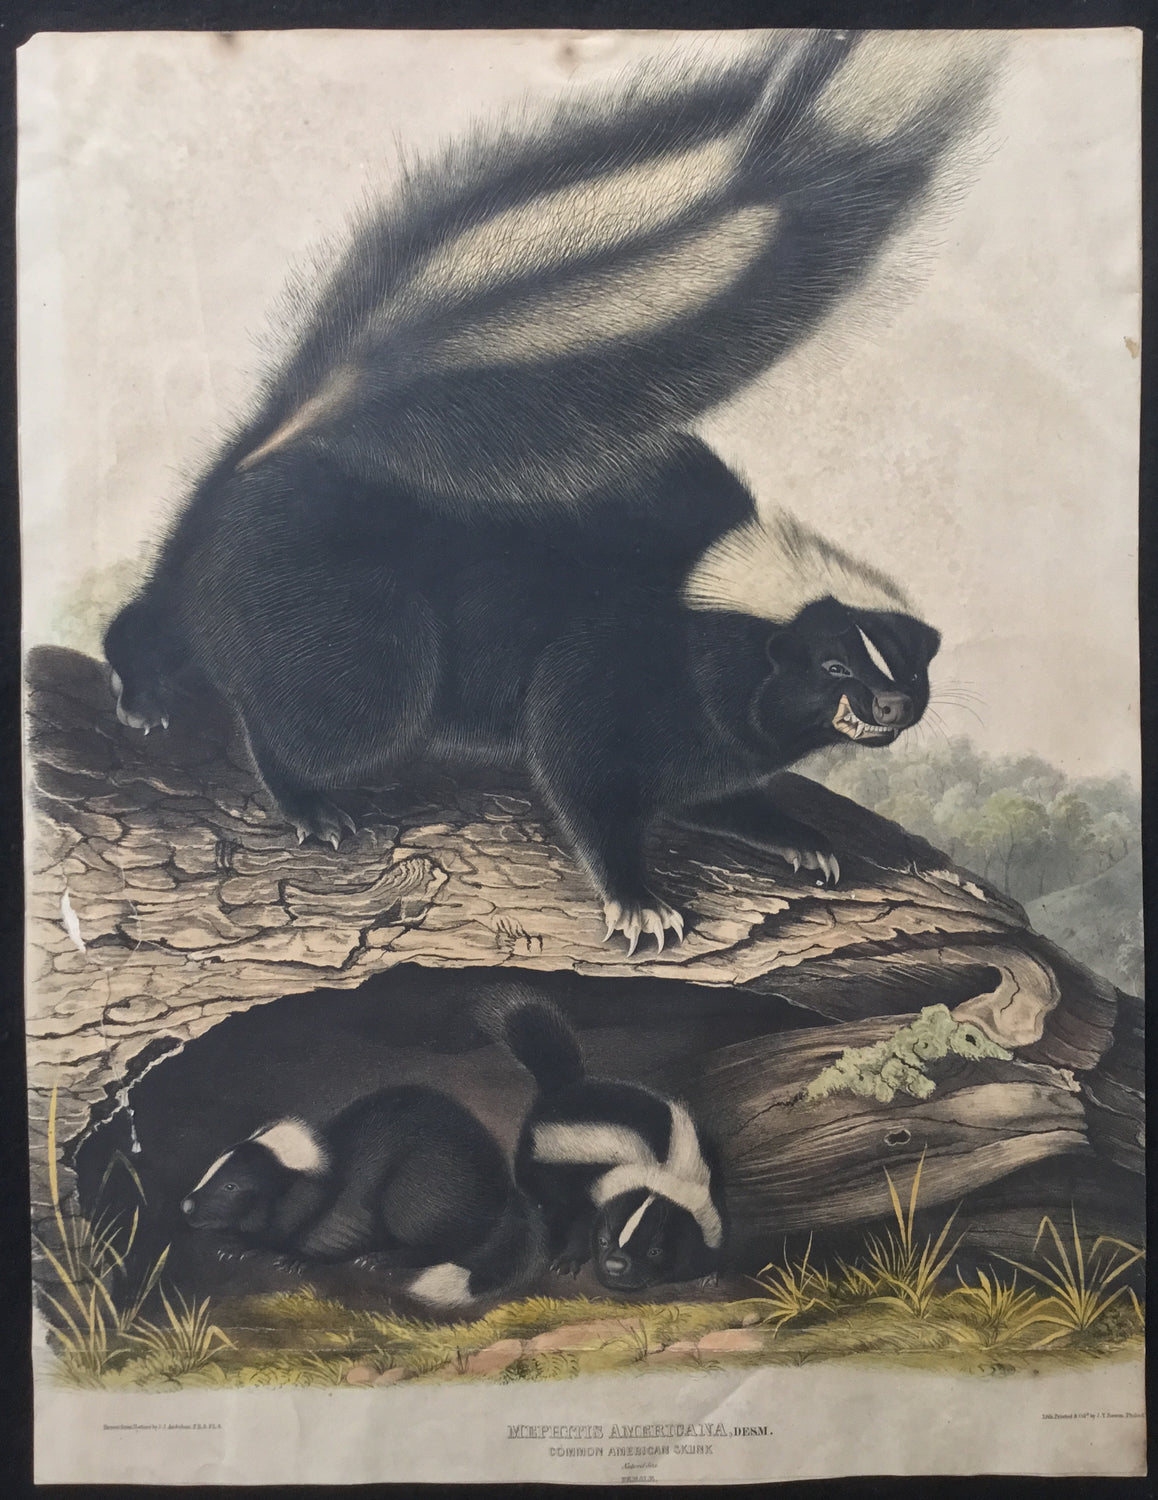 Lord-Hopkins Collection (Bowen pattern print), Audubon Original Imperial plate 42, Common American Skunk